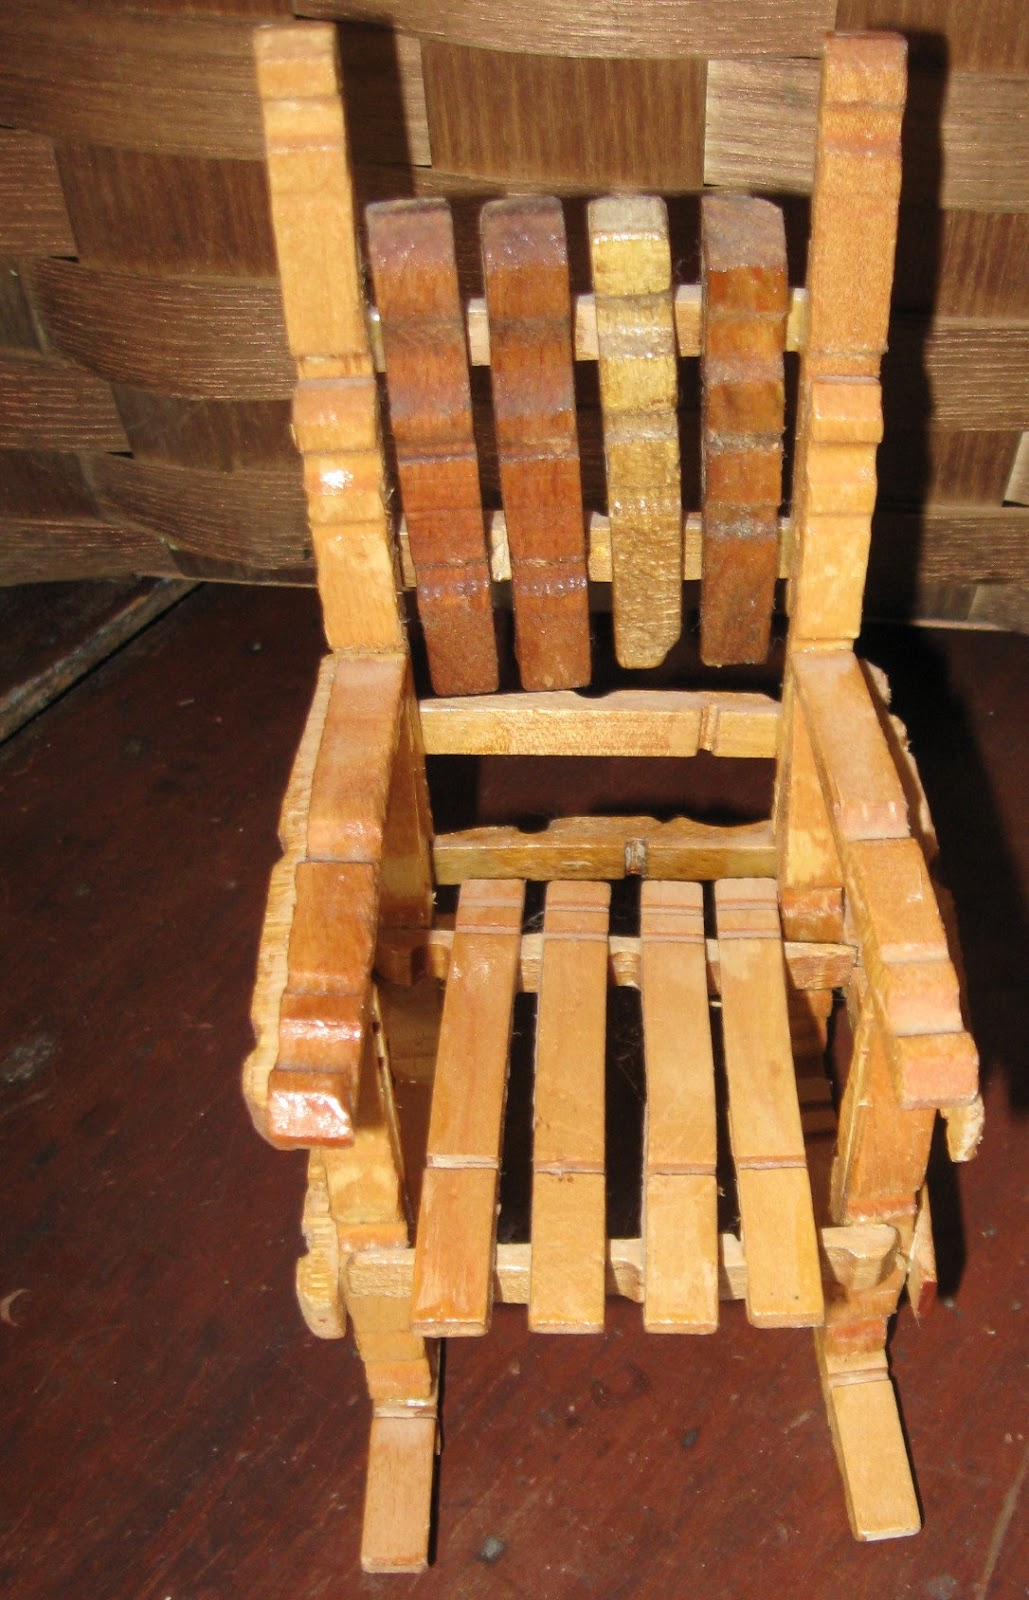 1000 images about o sa d vyrobi zo tipcov on pinterest for Small wooden rocking chair for crafts